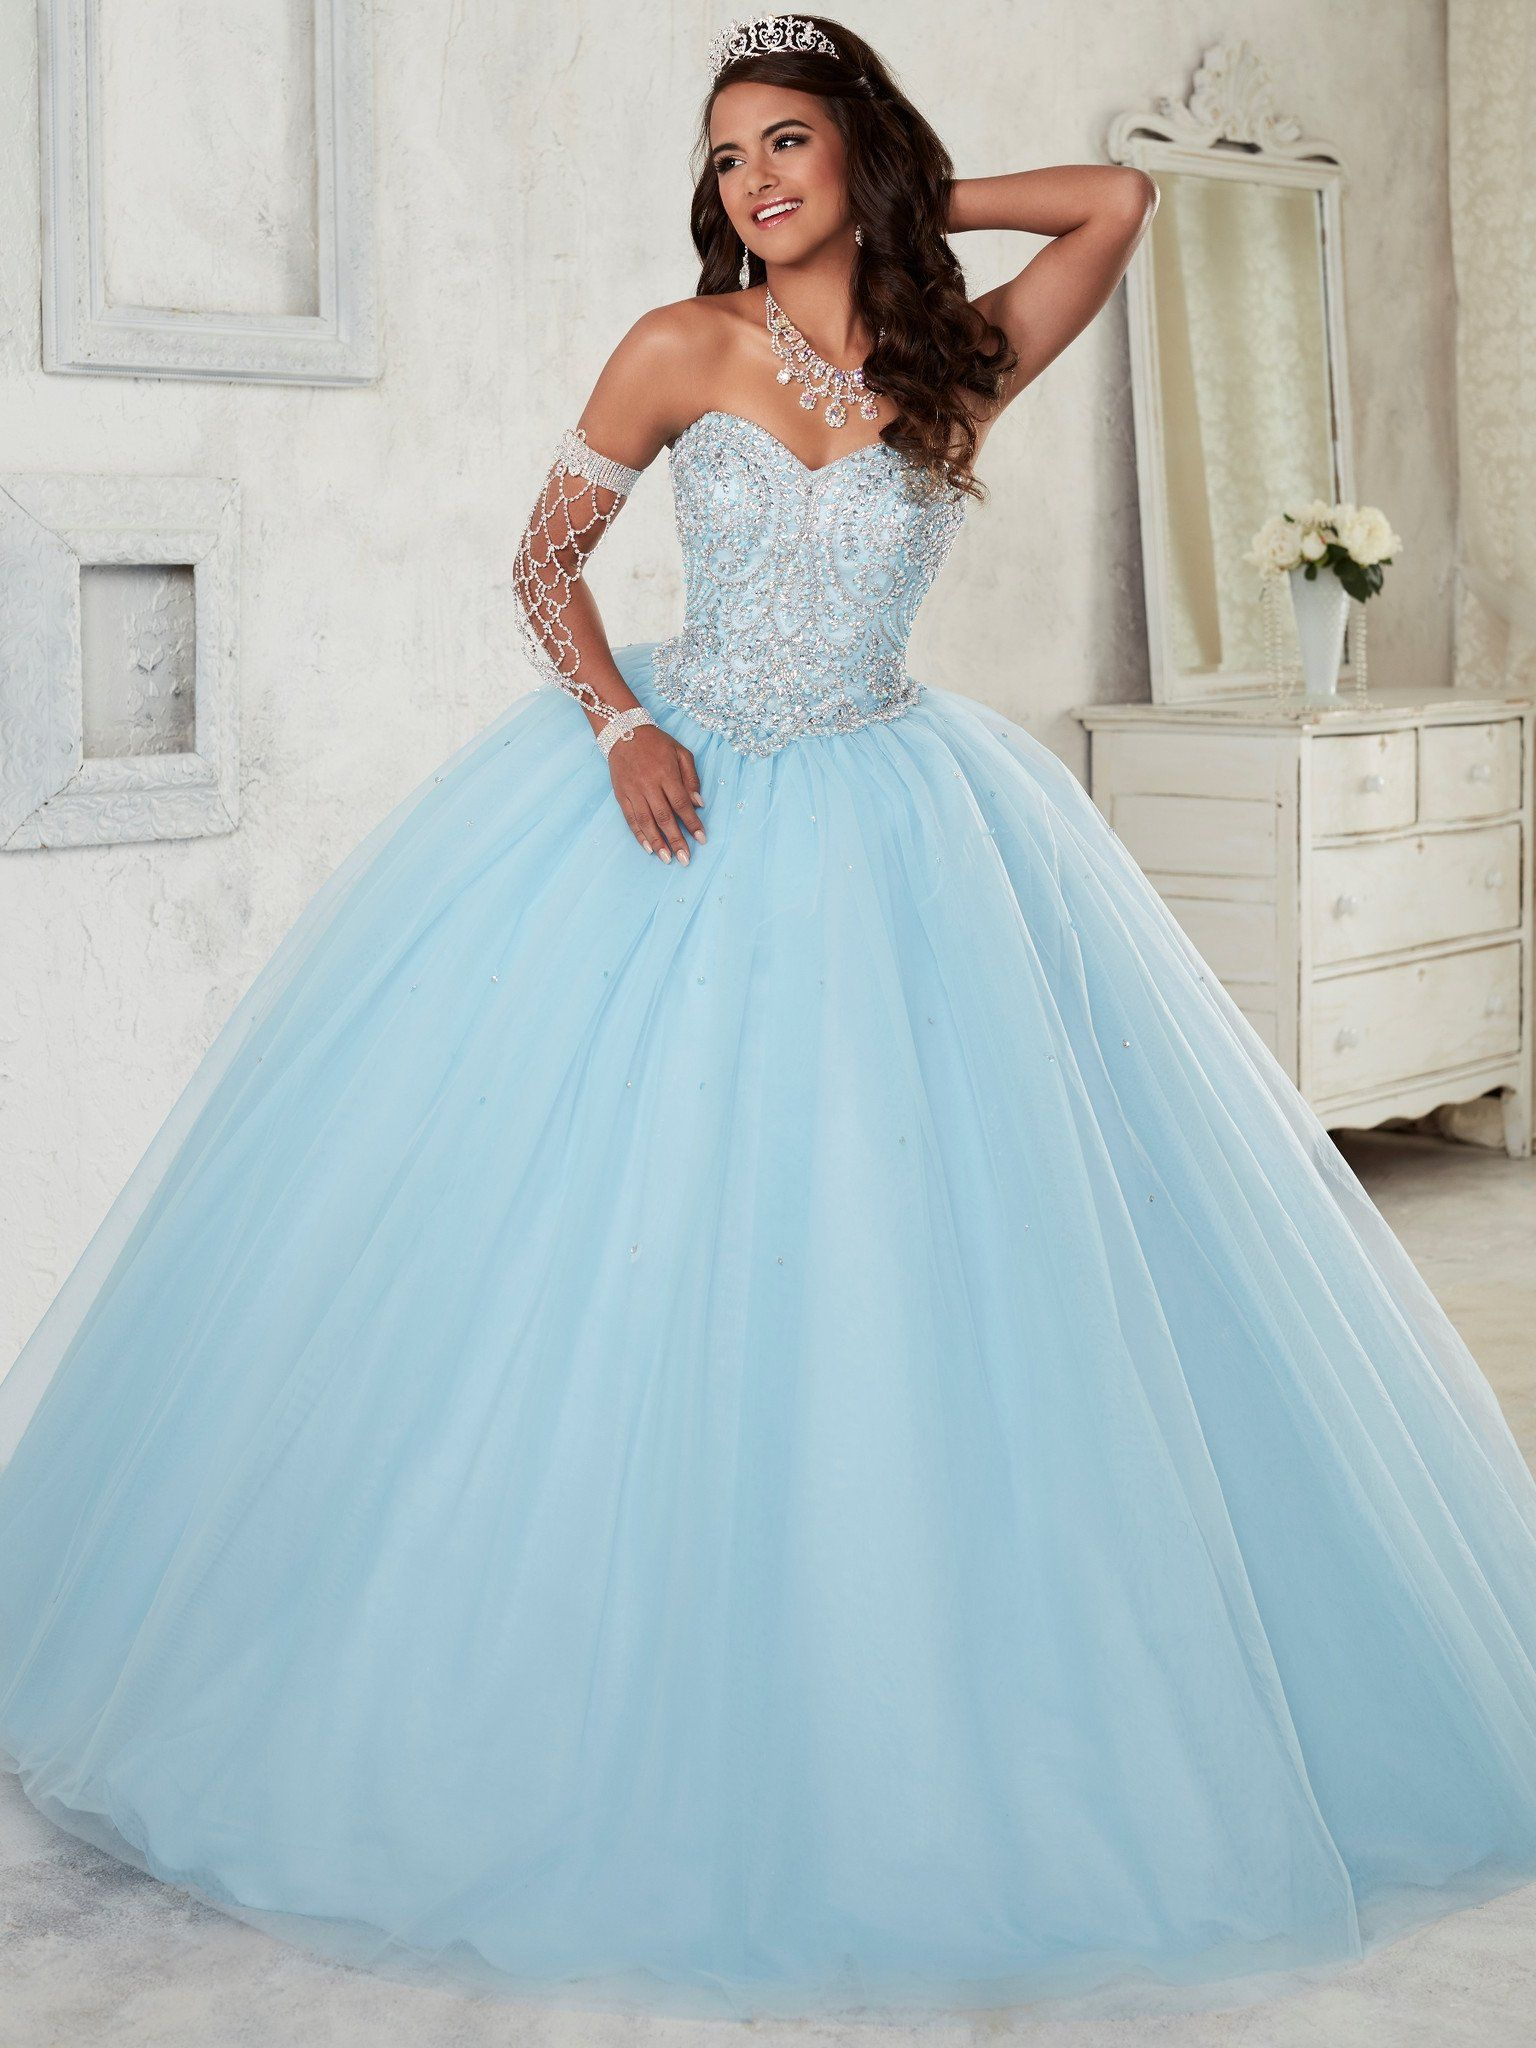 f5edf9e8fe9 Beaded Strapless Dress by House of Wu Fiesta Gowns Style 56298 in ...